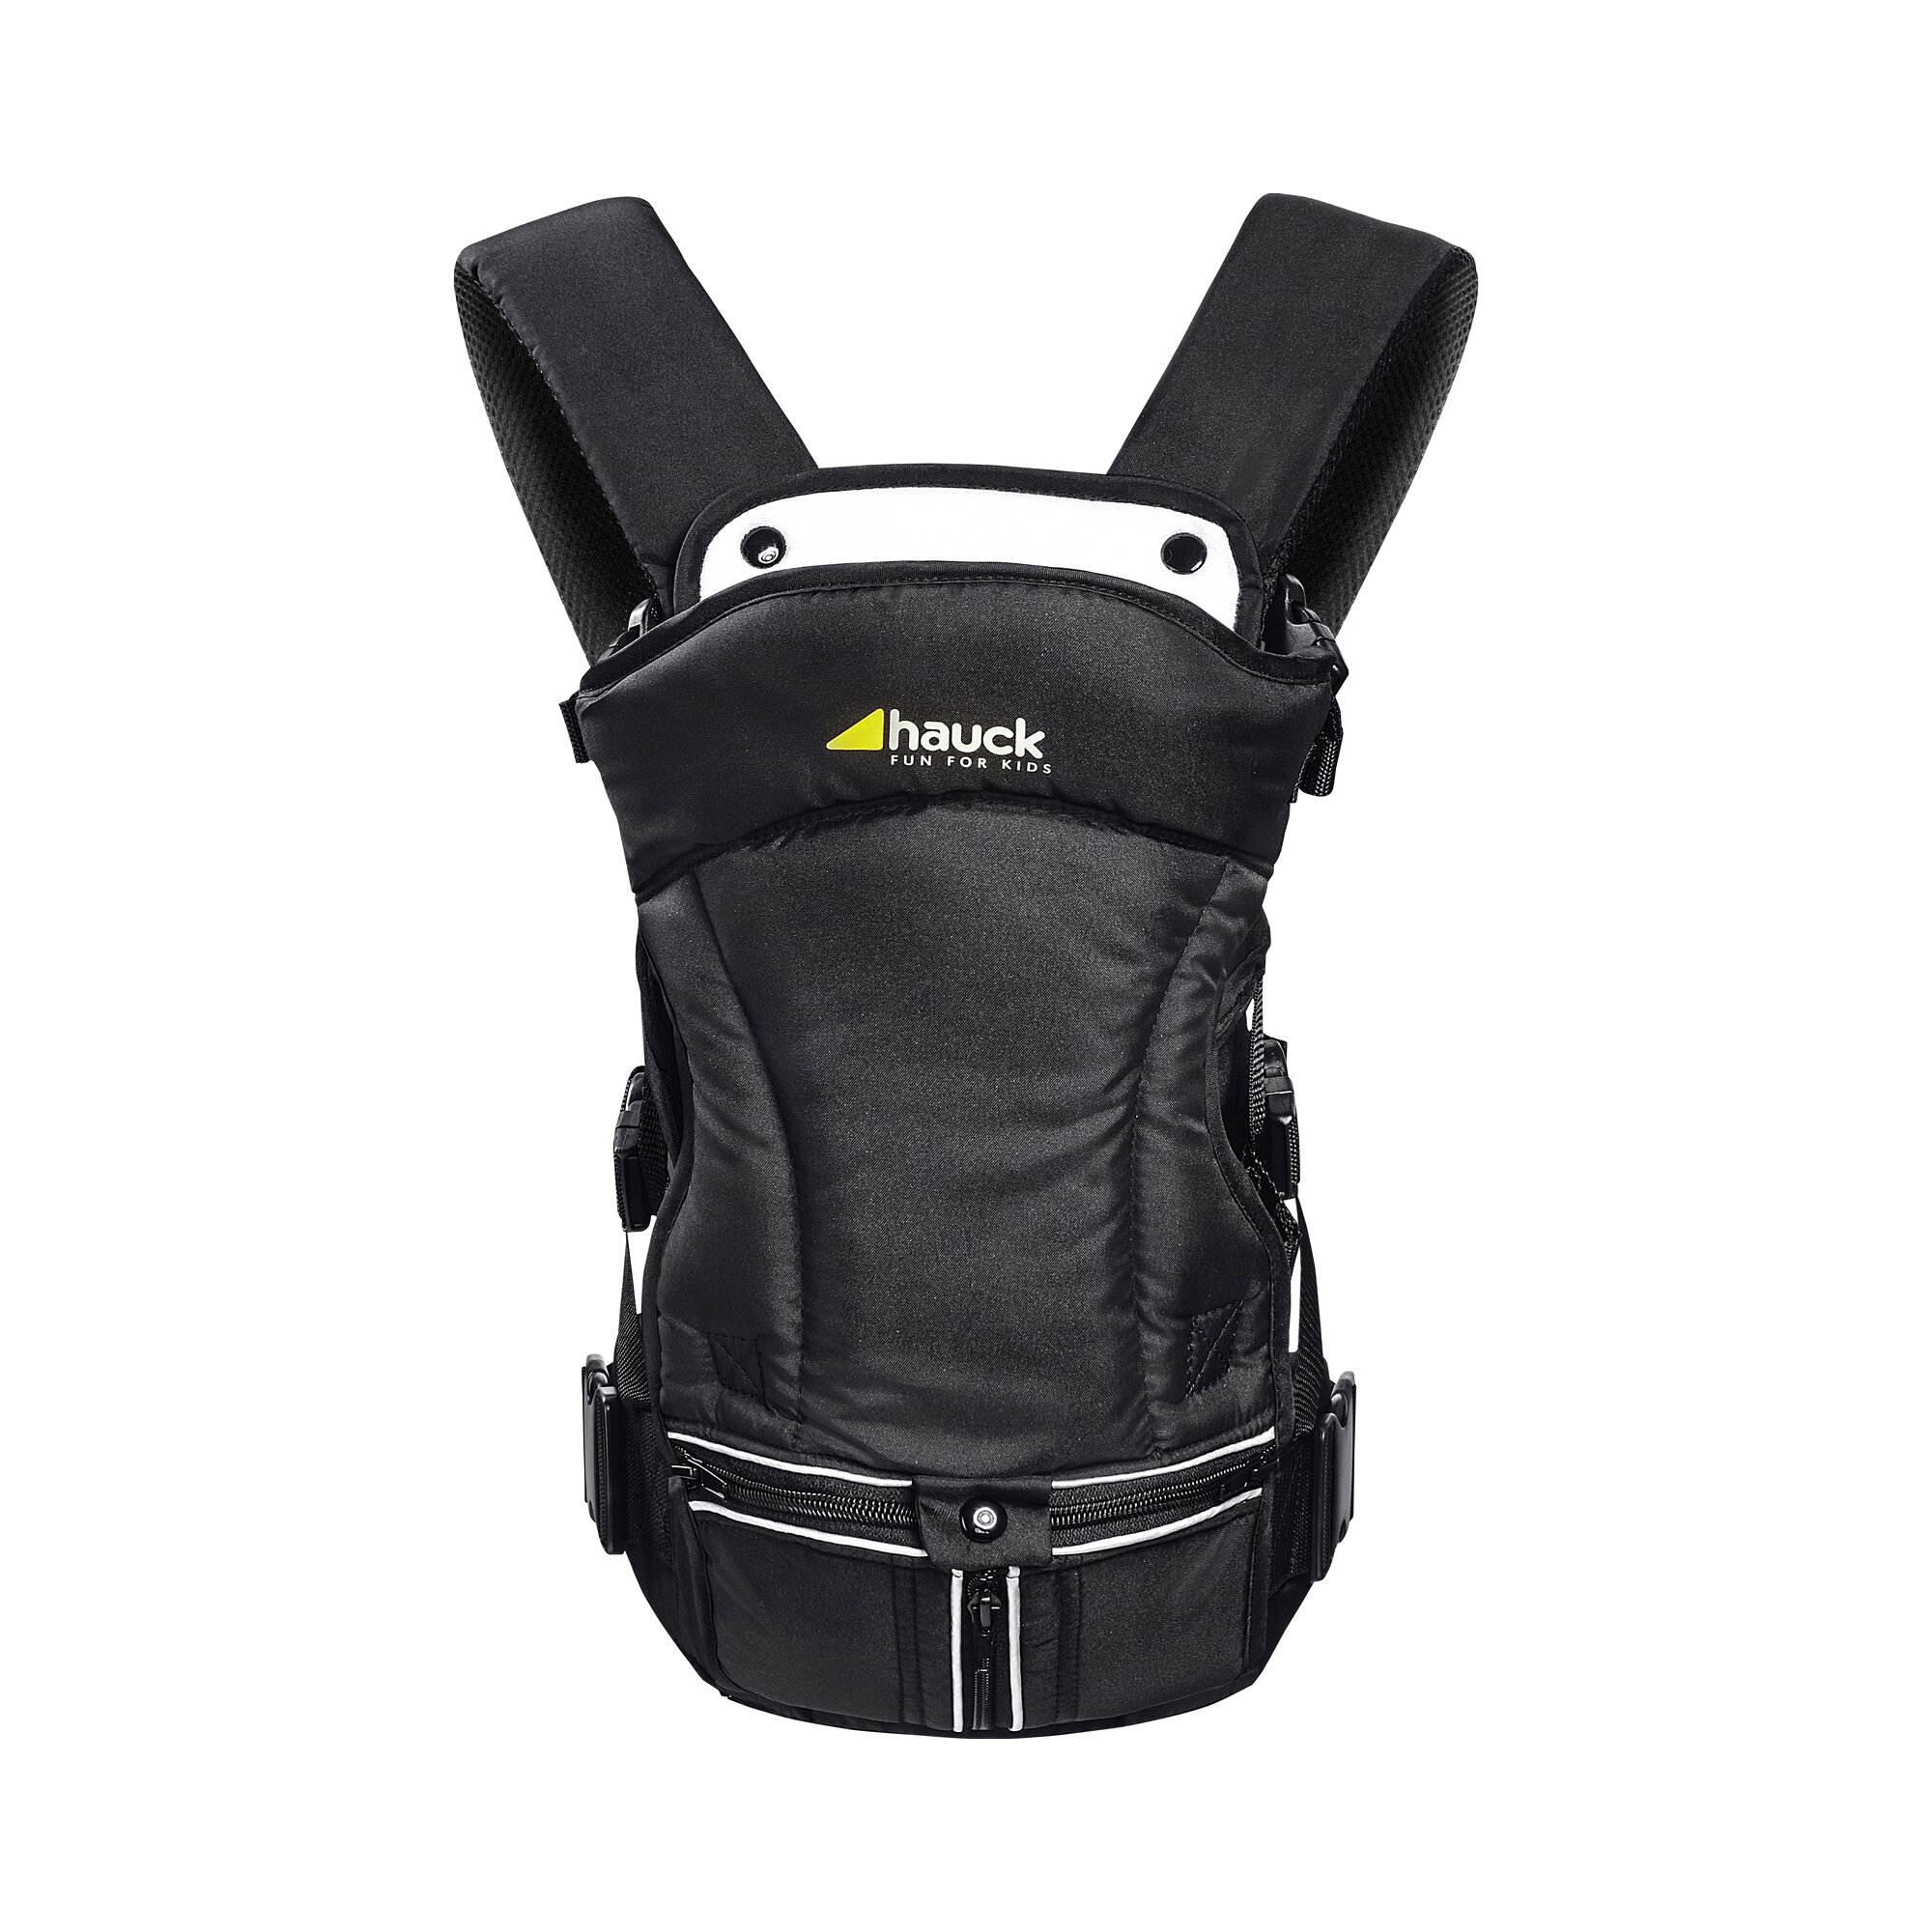 Hauck Babytrage 3-Way-Carrier, 3 Tragepositionen